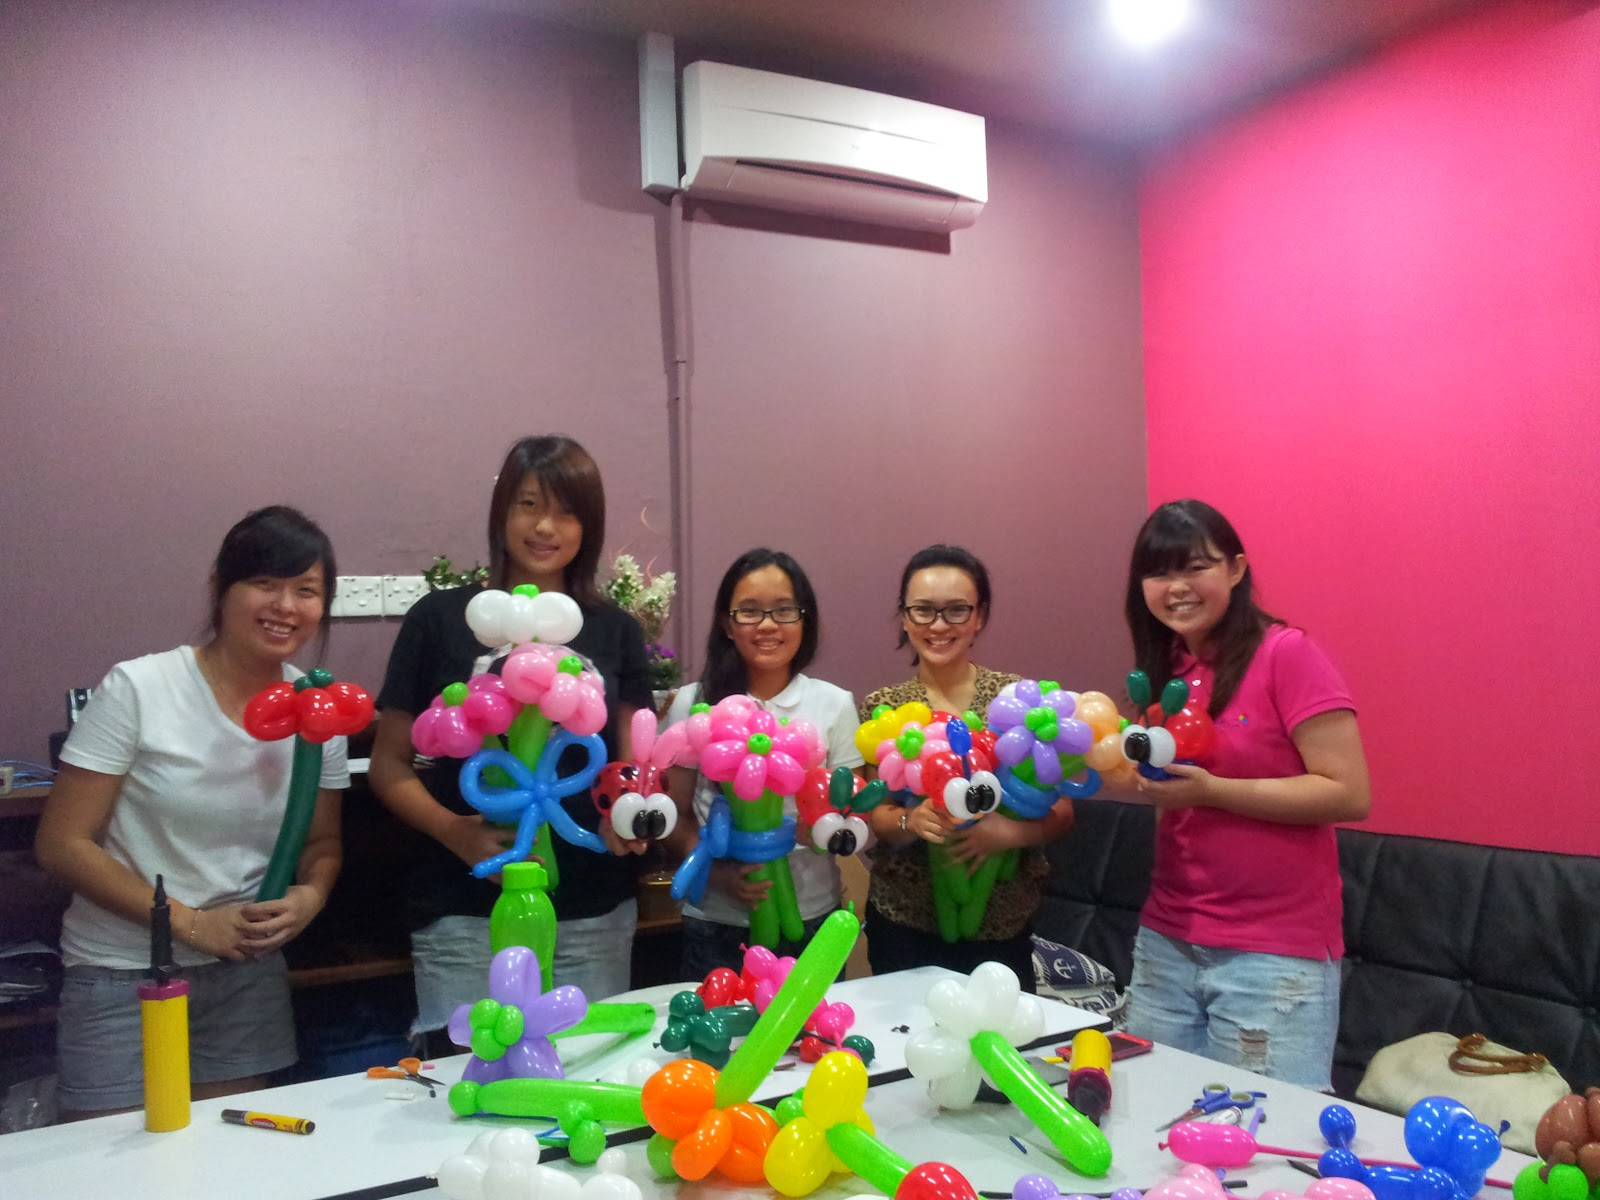 Balloon decorations for weddings birthday parties for Balloon decoration classes